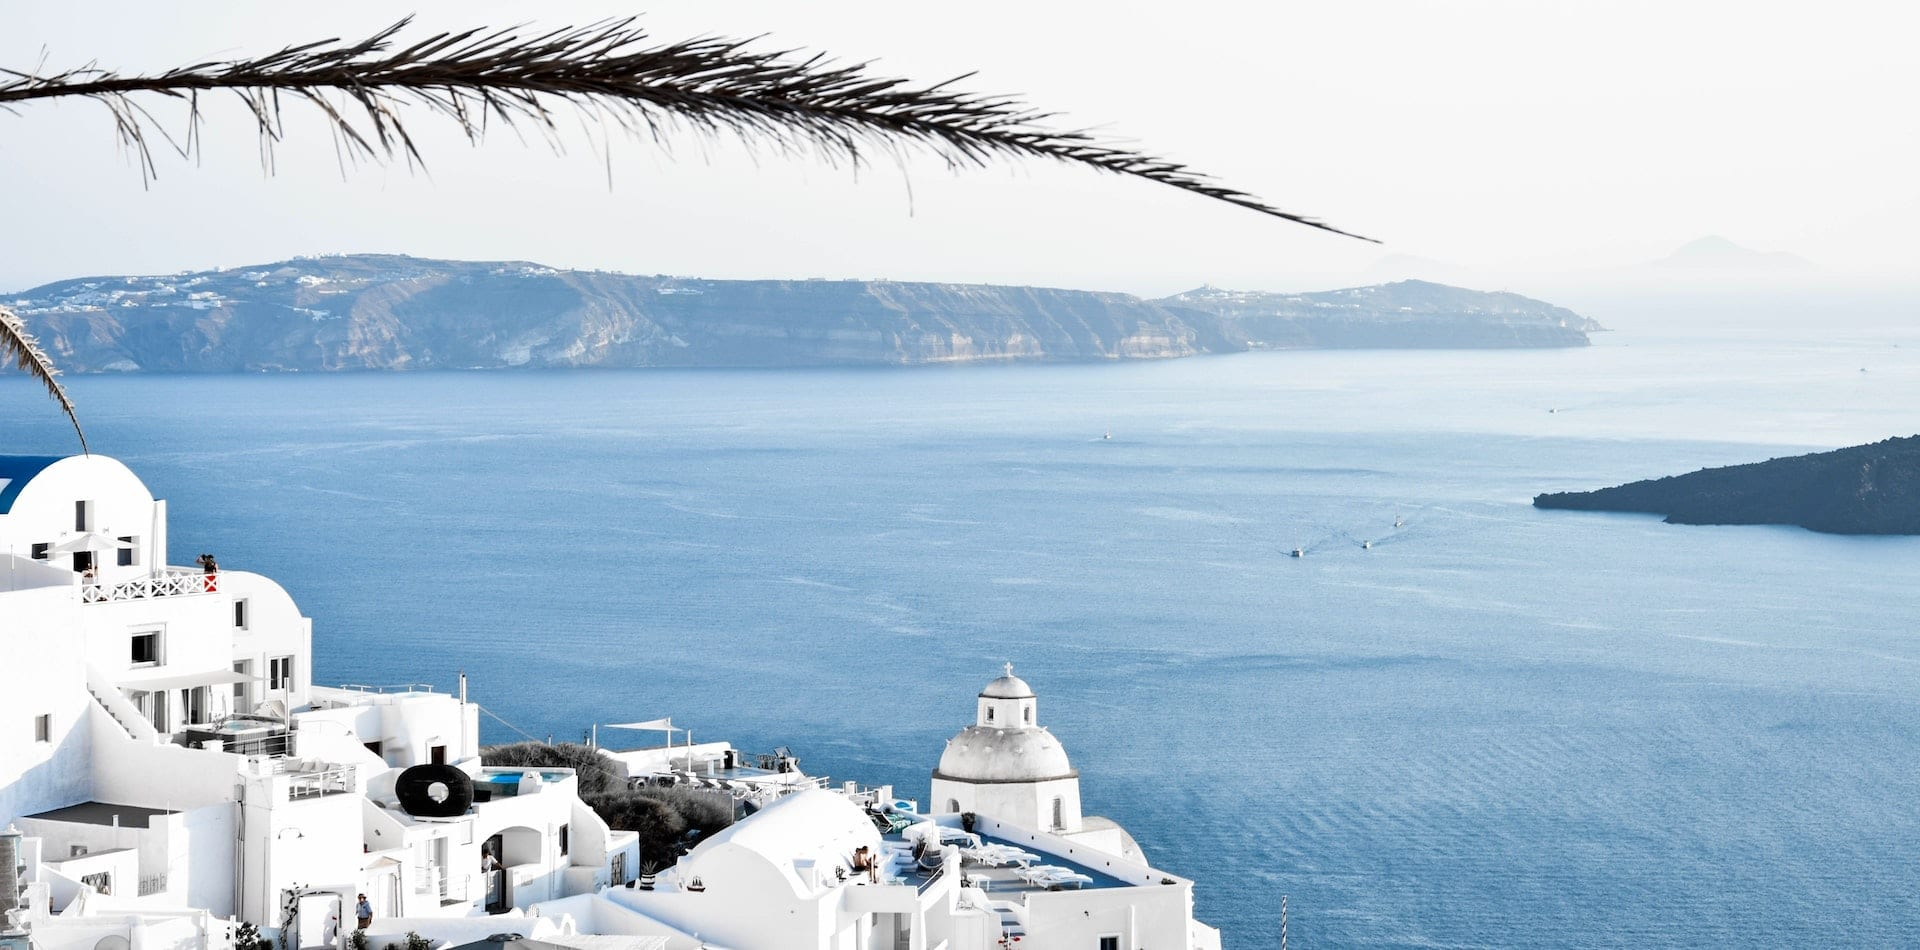 view over whitewashed buildings and pristine Greek ocean landscape